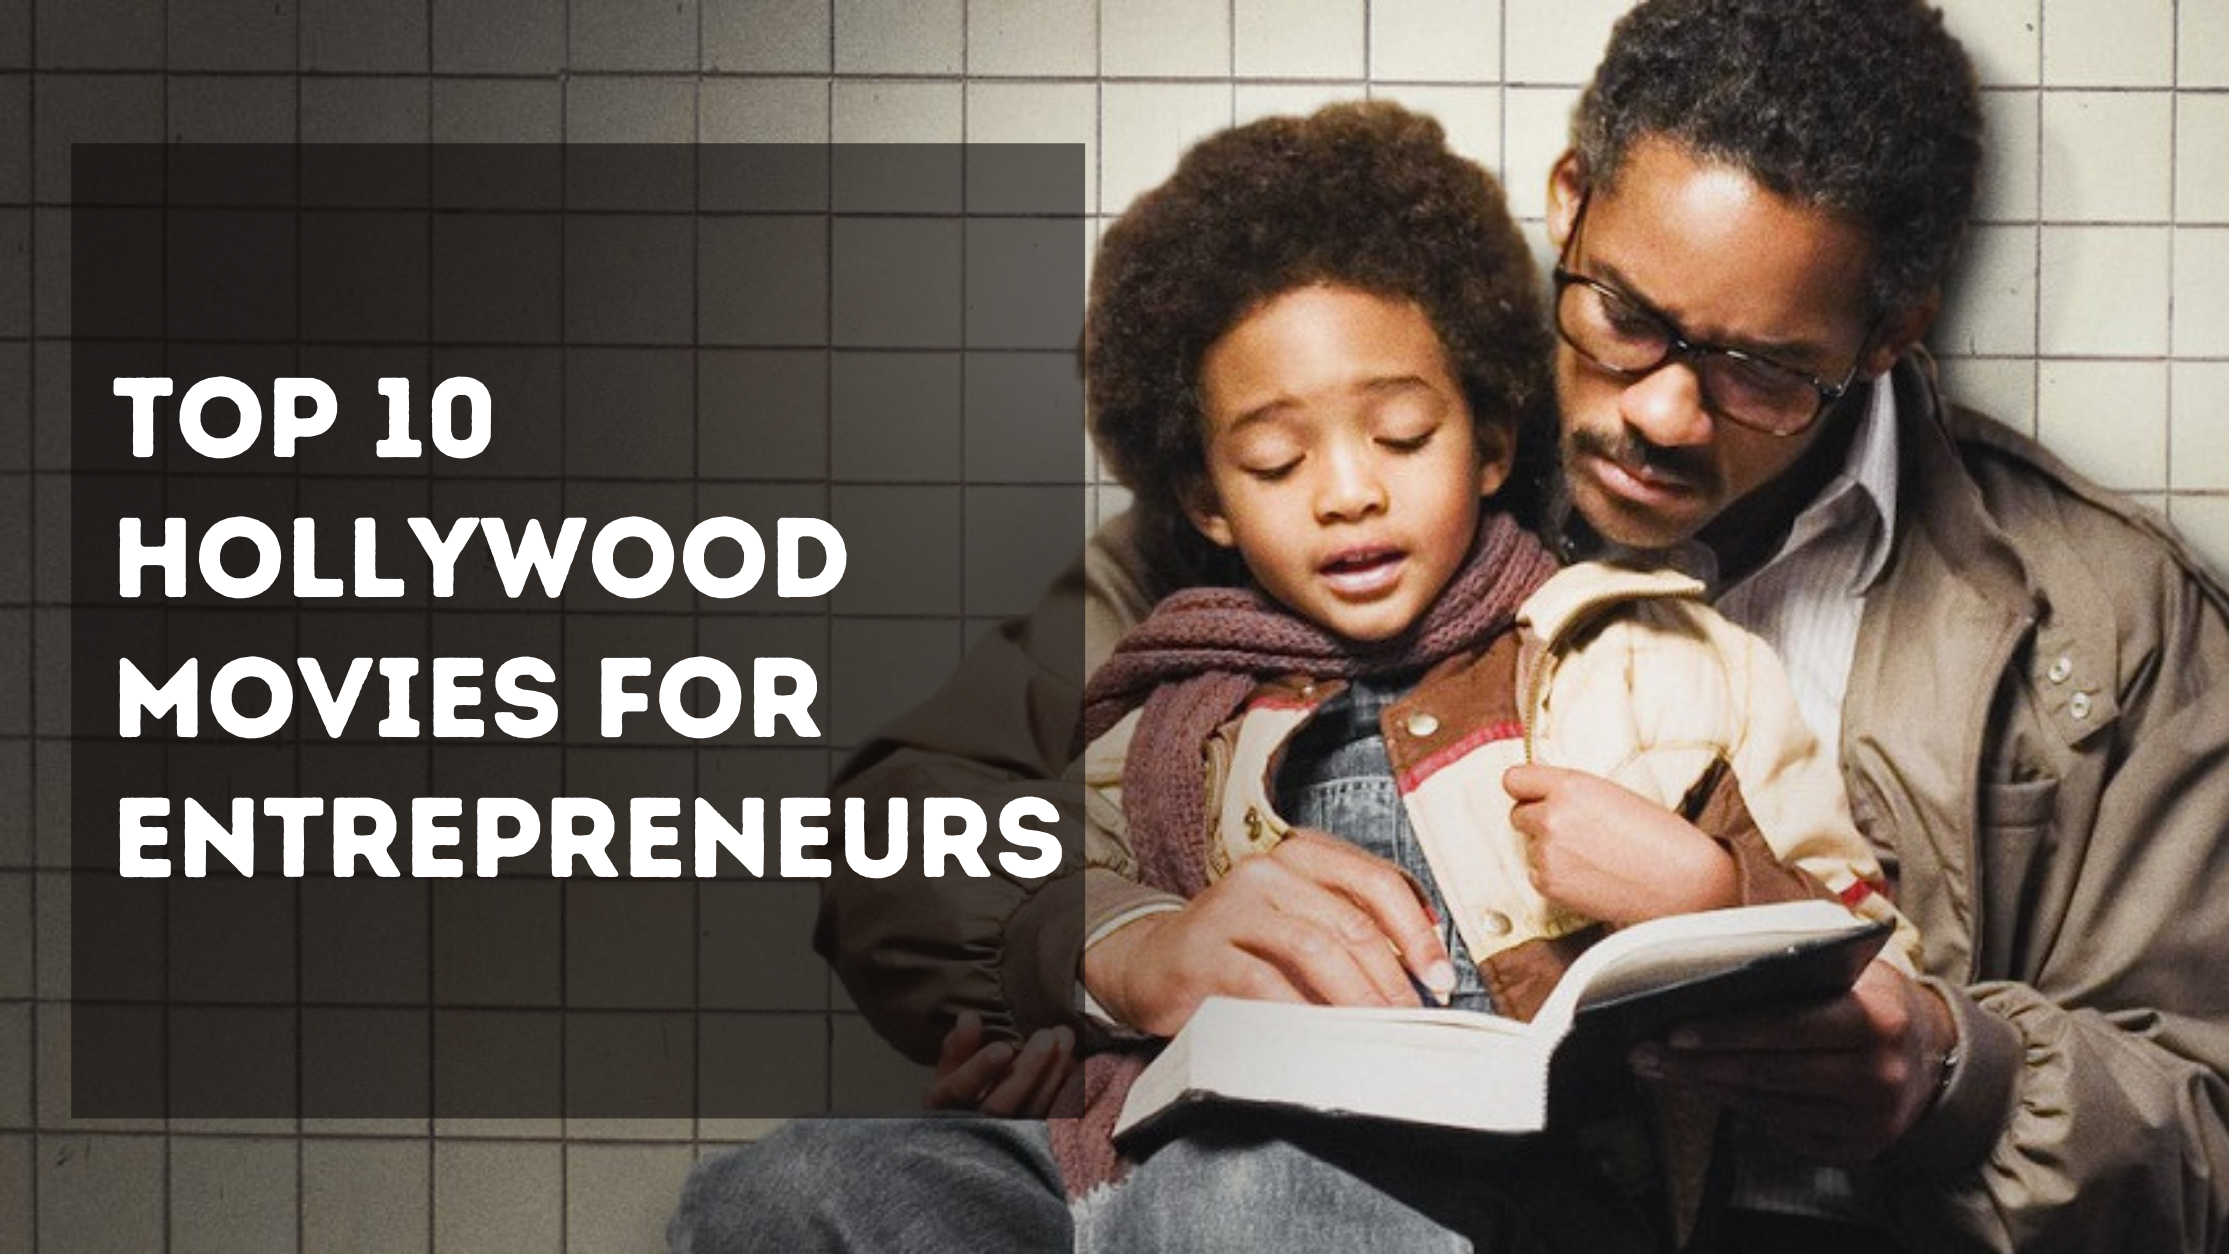 Top 10 Hollywood Movies for Entrepreneurs